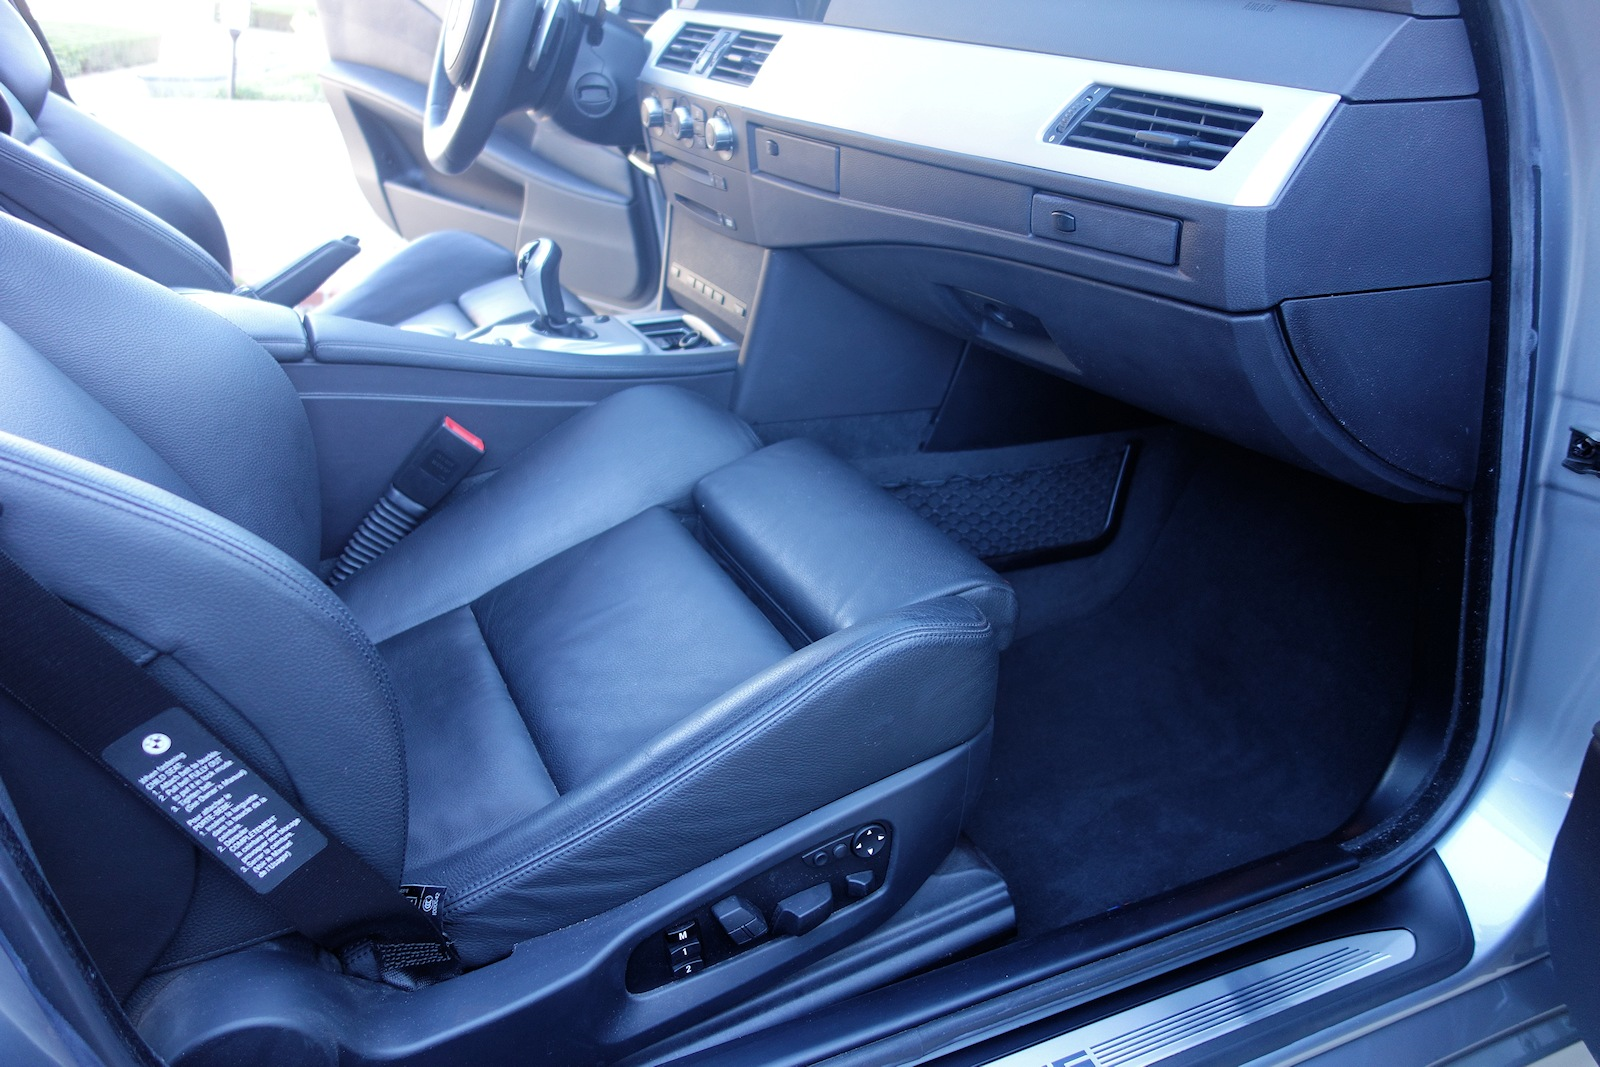 E60 03 10 For Sale Low Mileage 2006 E60 M5 With Full Rpi Setup Ess Vt2 650 Supercharger And